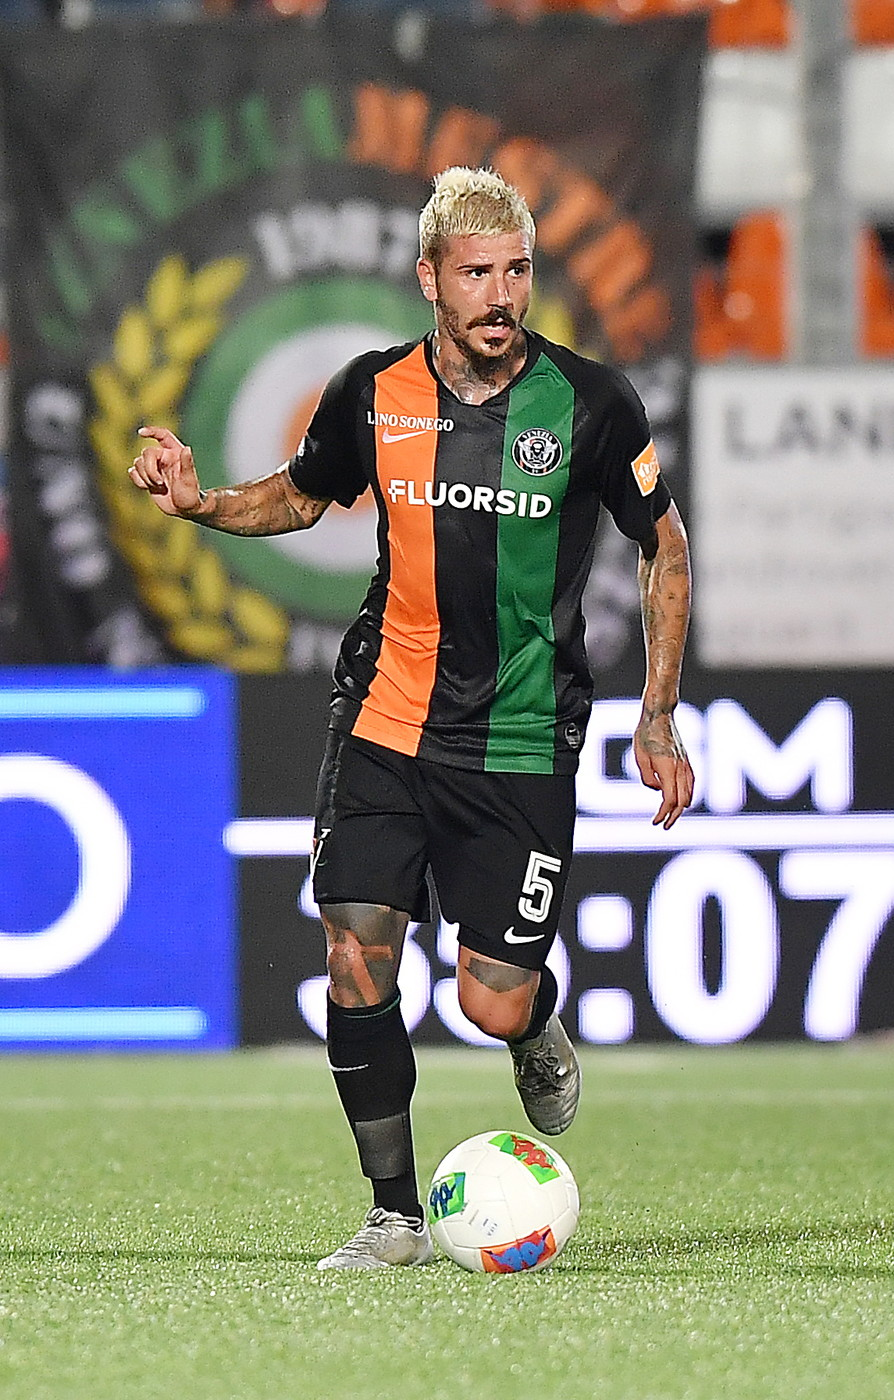 Antonio Junior Vacca (Calcio - Venezia)